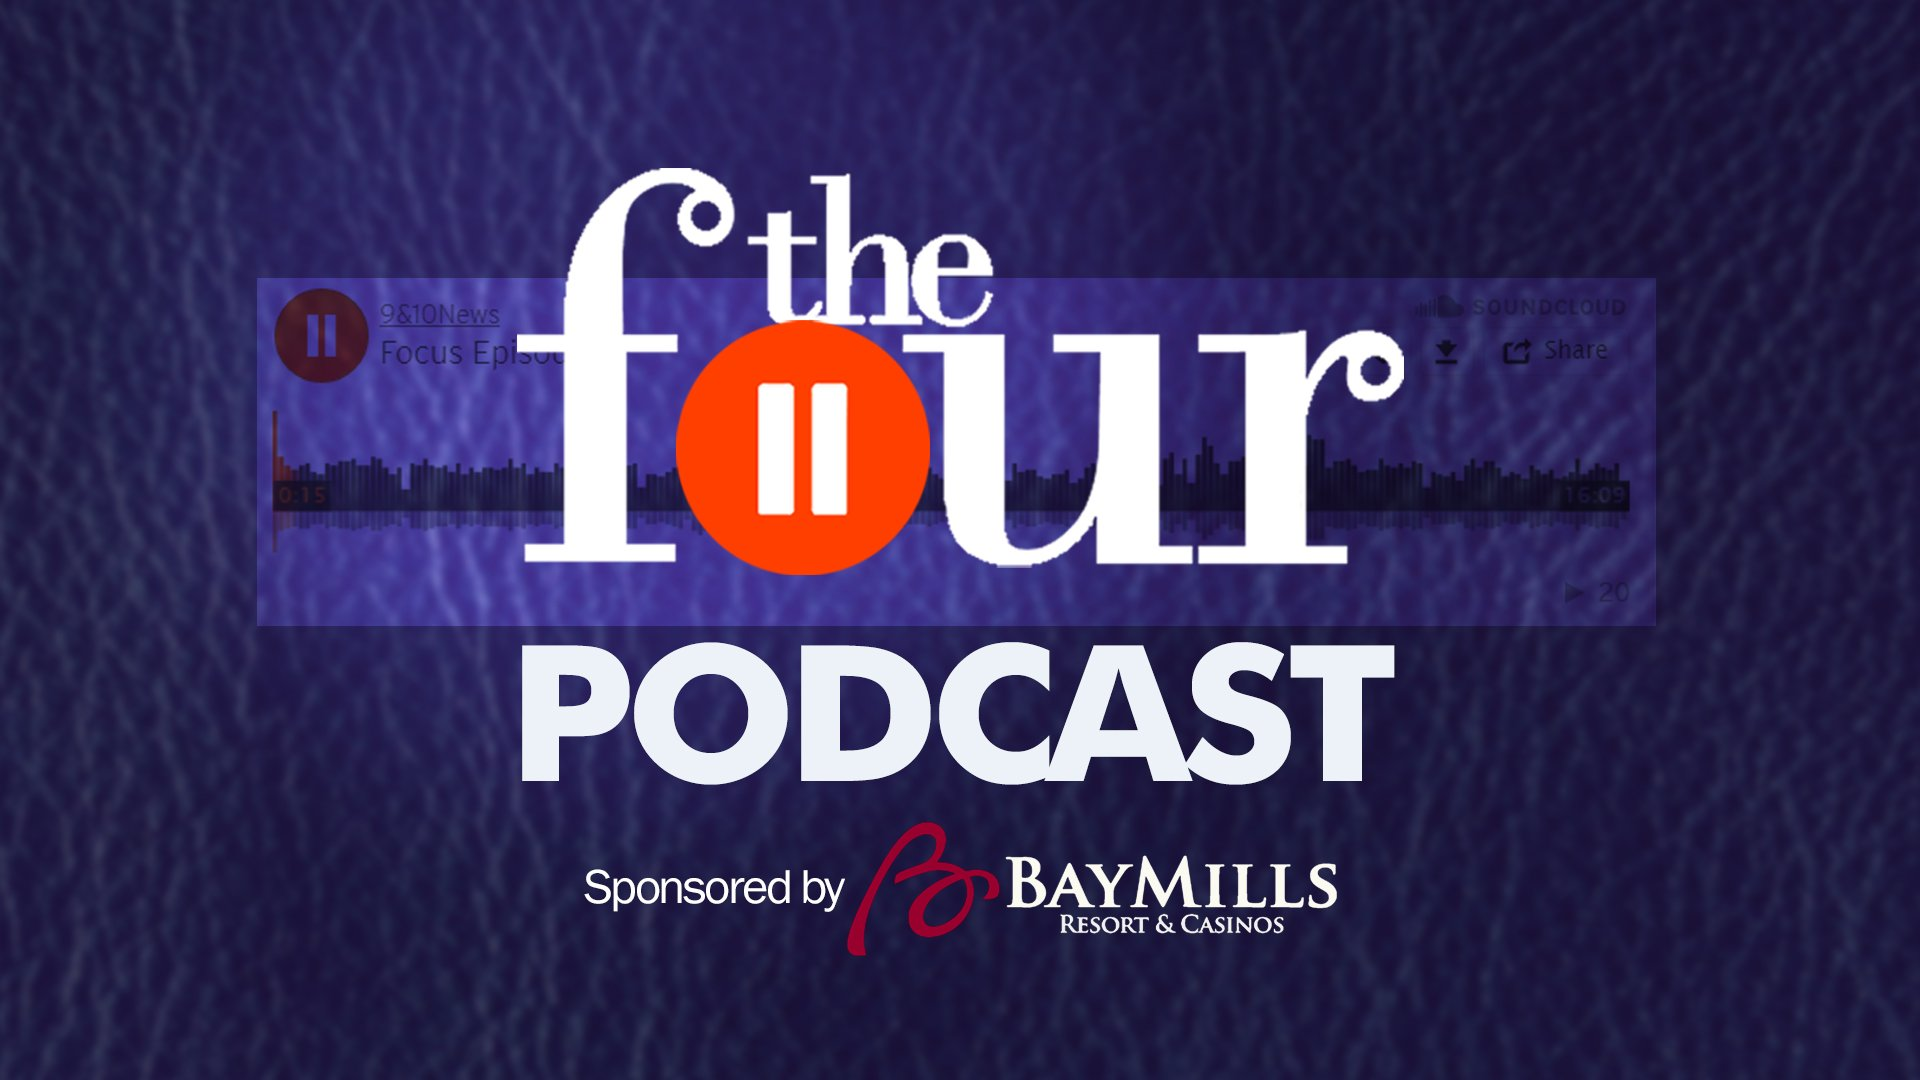 The Four Podcast - Get To Know Brighid Driscoll Of The GTPulse - 9